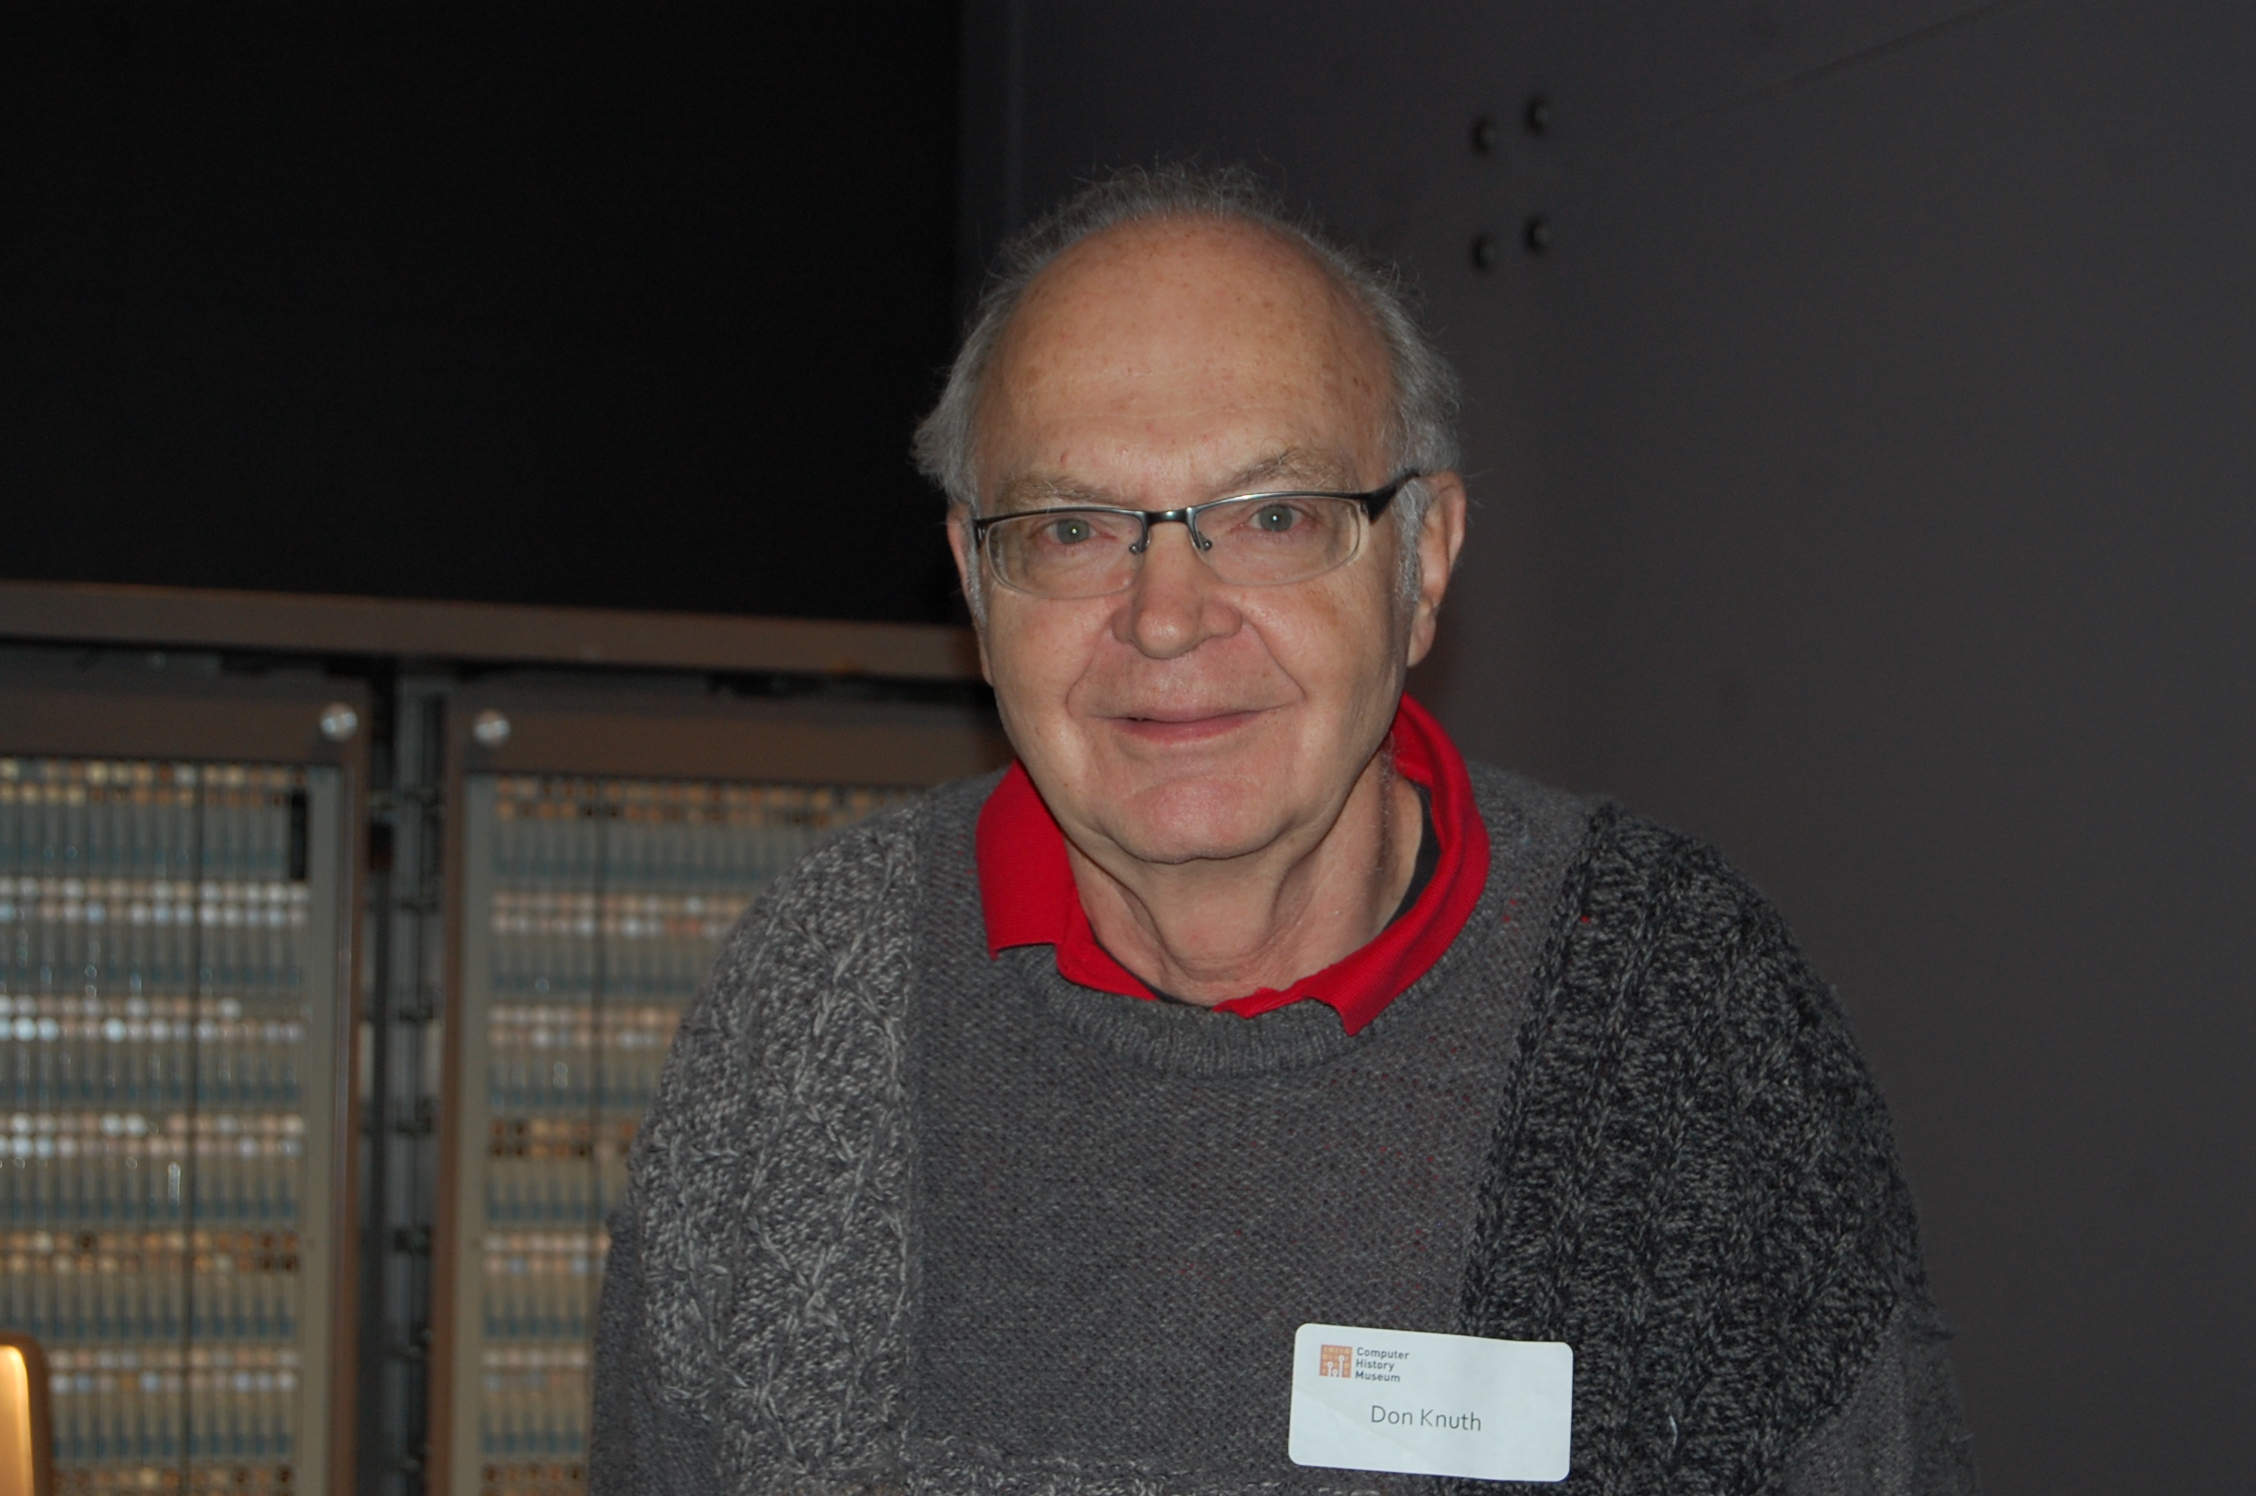 donald knuth 86 records for donald knuth find donald knuth's phone, address, and email on spokeo, the leading online directory.